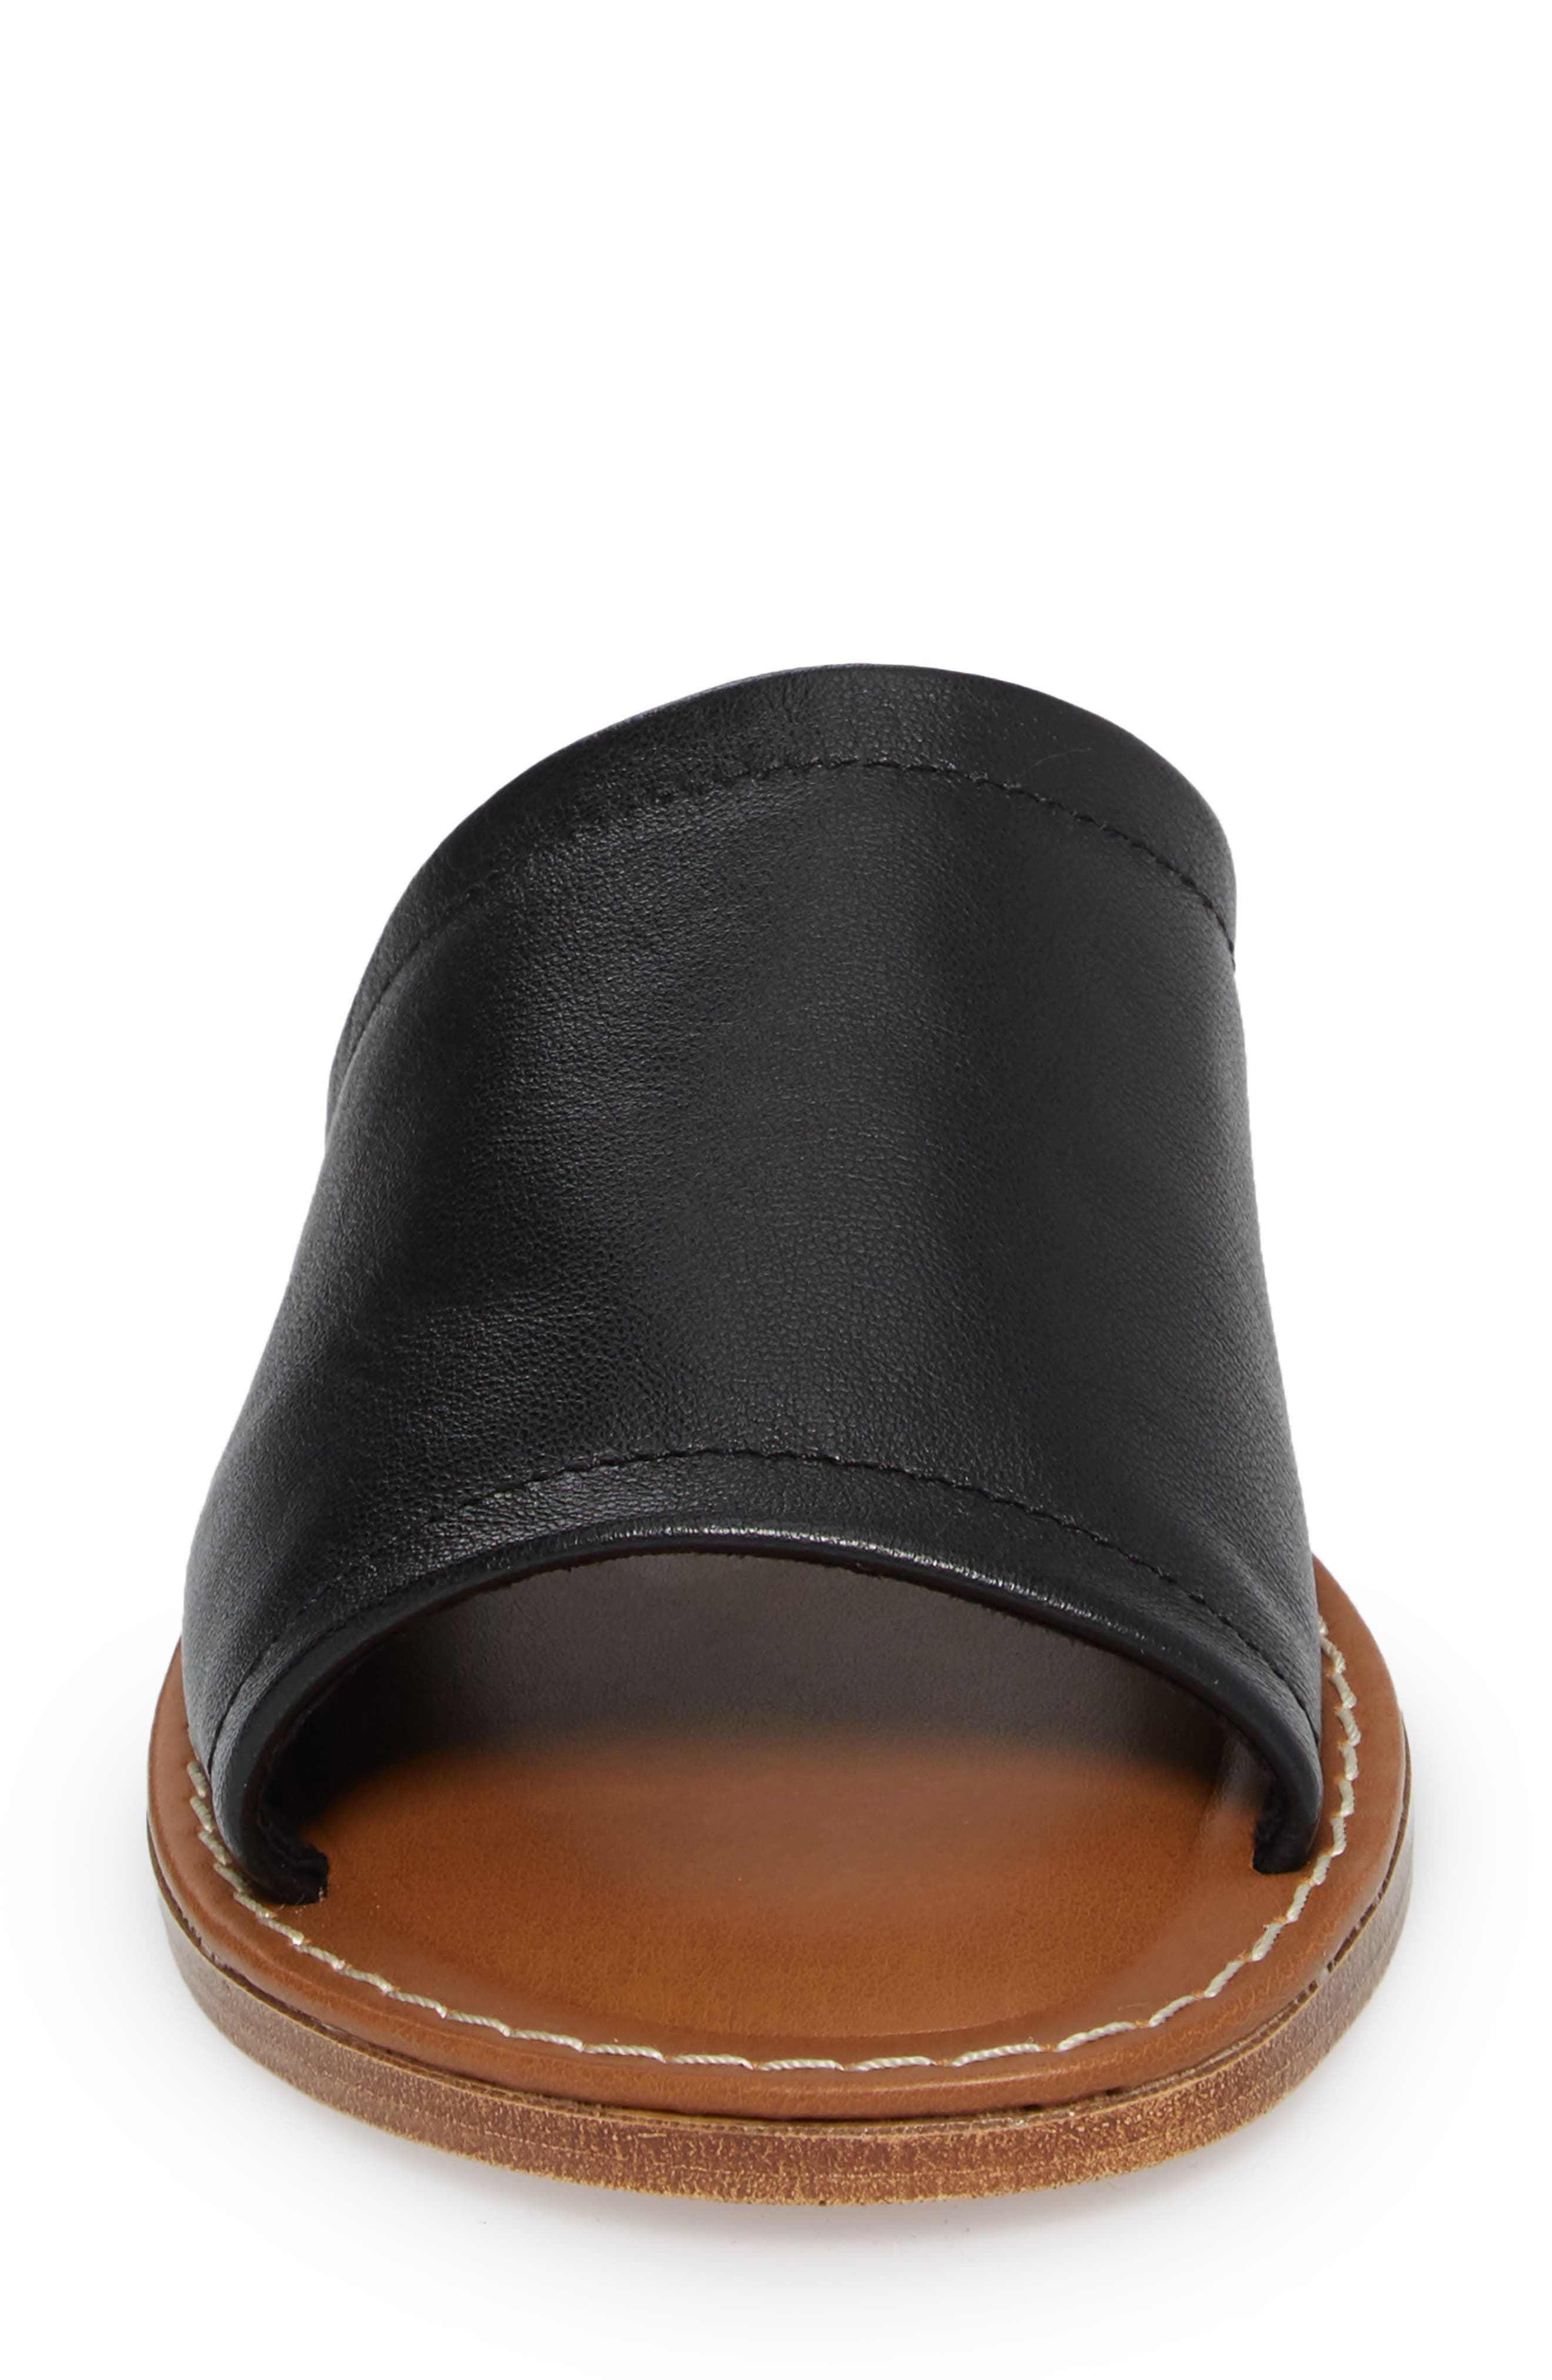 BELLA VITA, Ros Slide Sandal, Alternate thumbnail 4, color, BLACK LEATHER